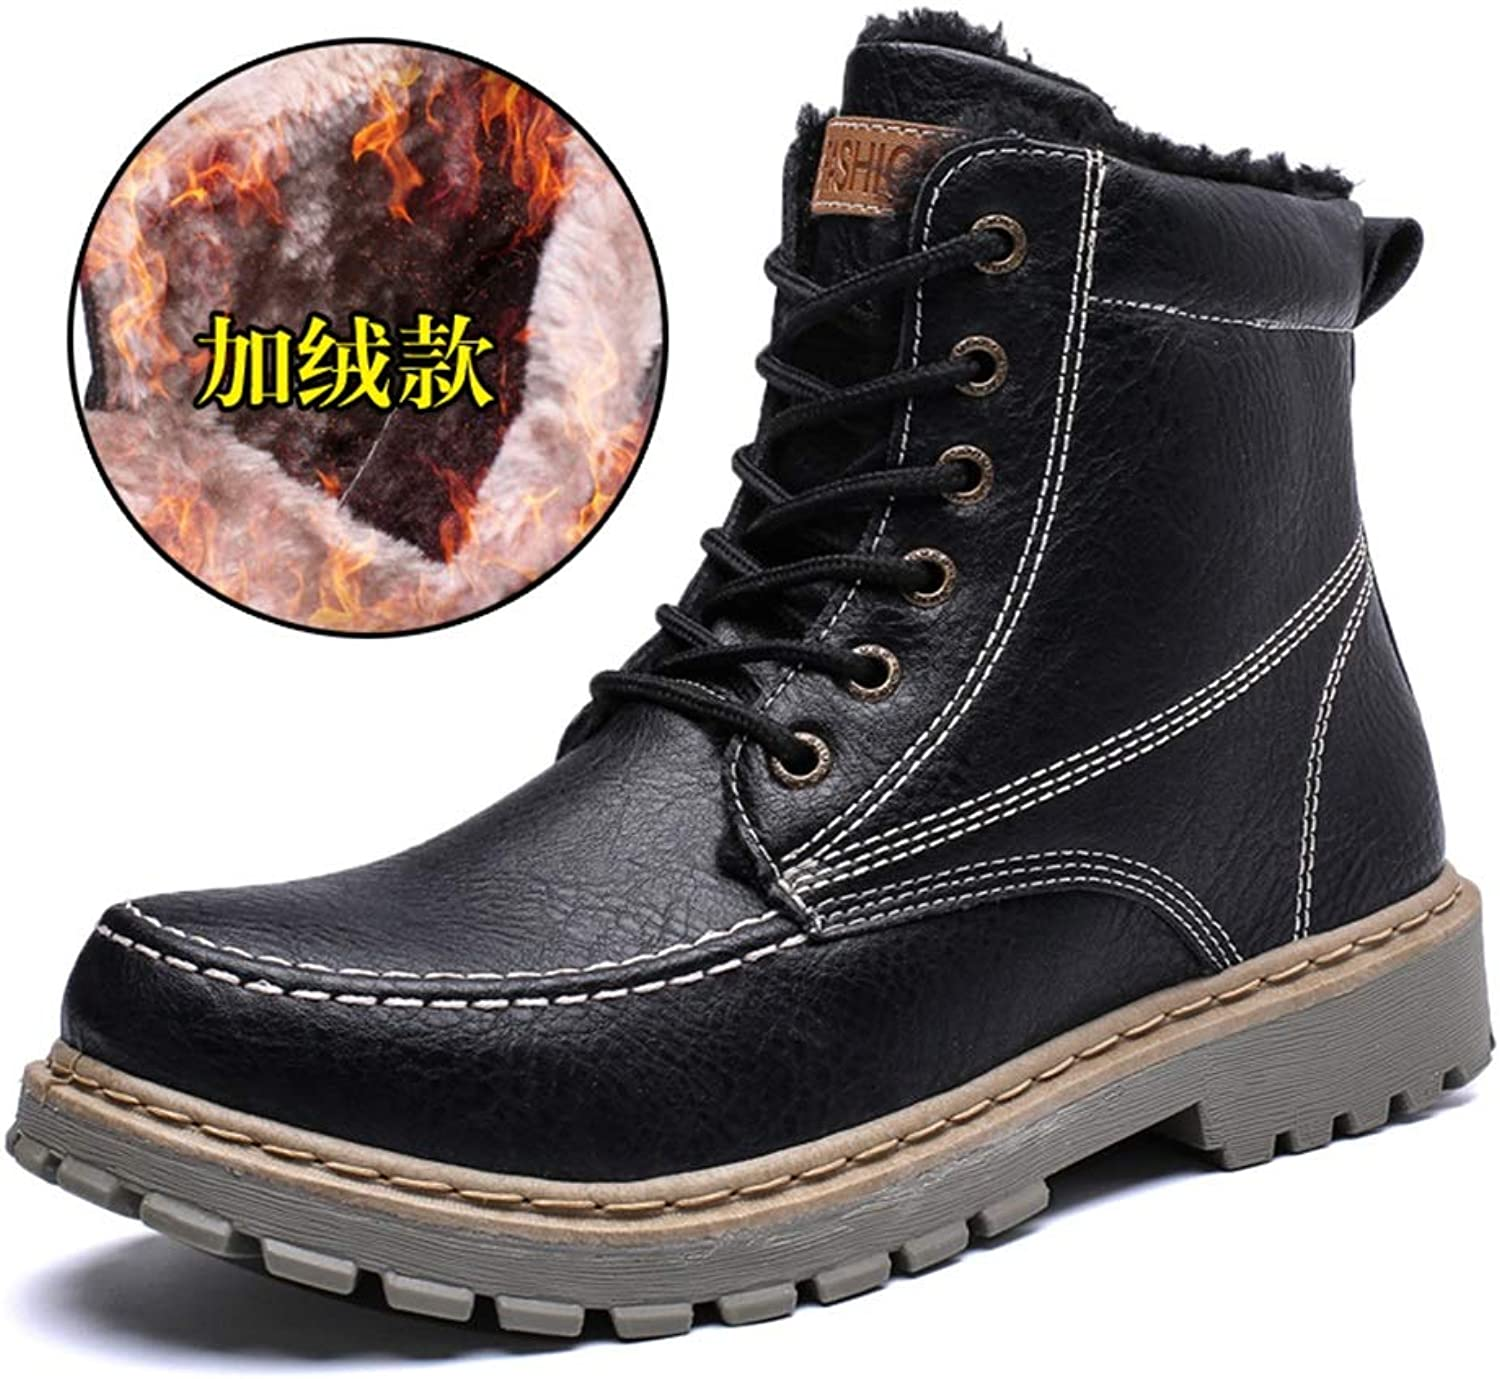 JUJIANFU-shoes 2018 New Men's Fashion Ankle Work Boots Casual Thickening and Fleece Lined Anti-Collision Toe High top Martin Boot